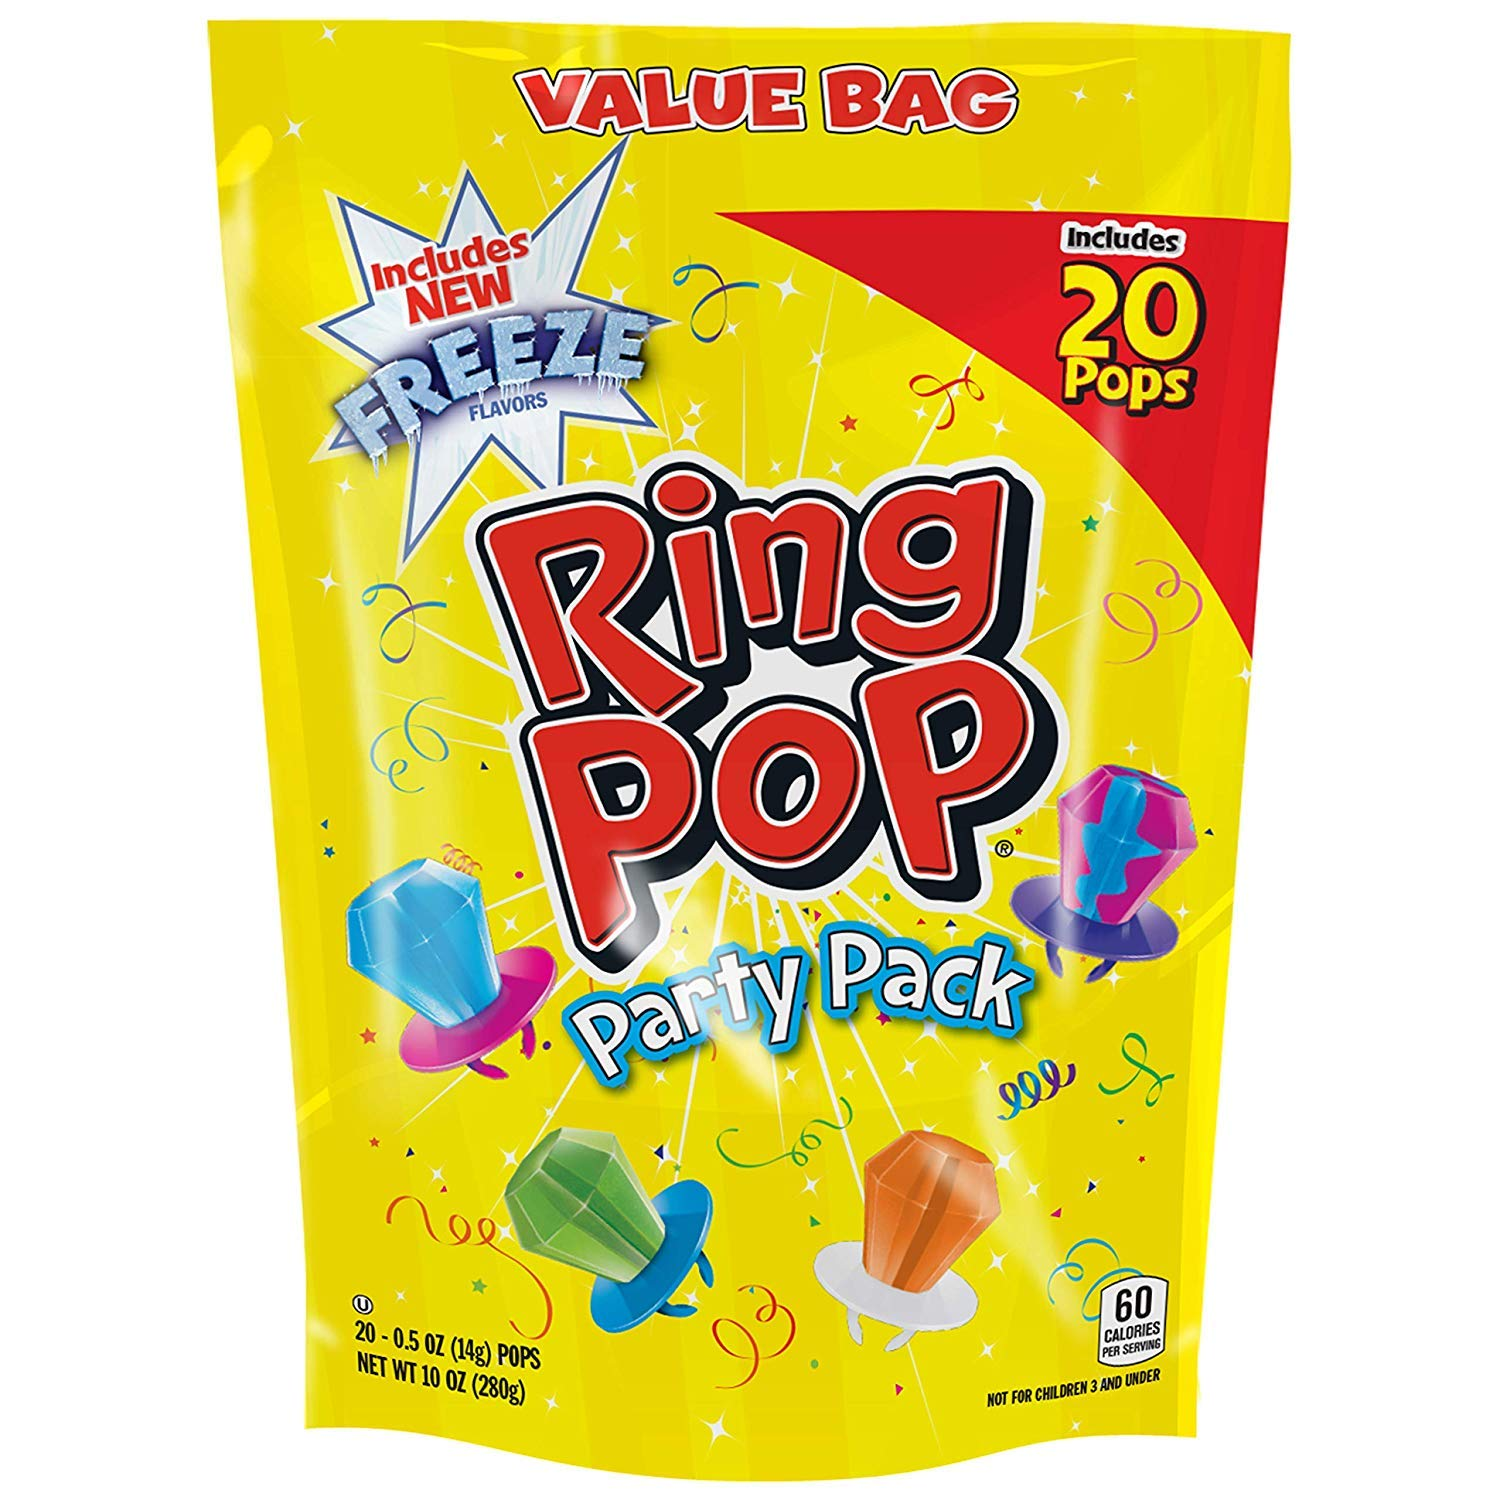 Ring POP Individually Wrapped Variety Halloween Party Pack - Candy Lollipop Suckers W/ Assorted Flavors, 20 Count (Pack of 1) (4 pack) by Ring Pop